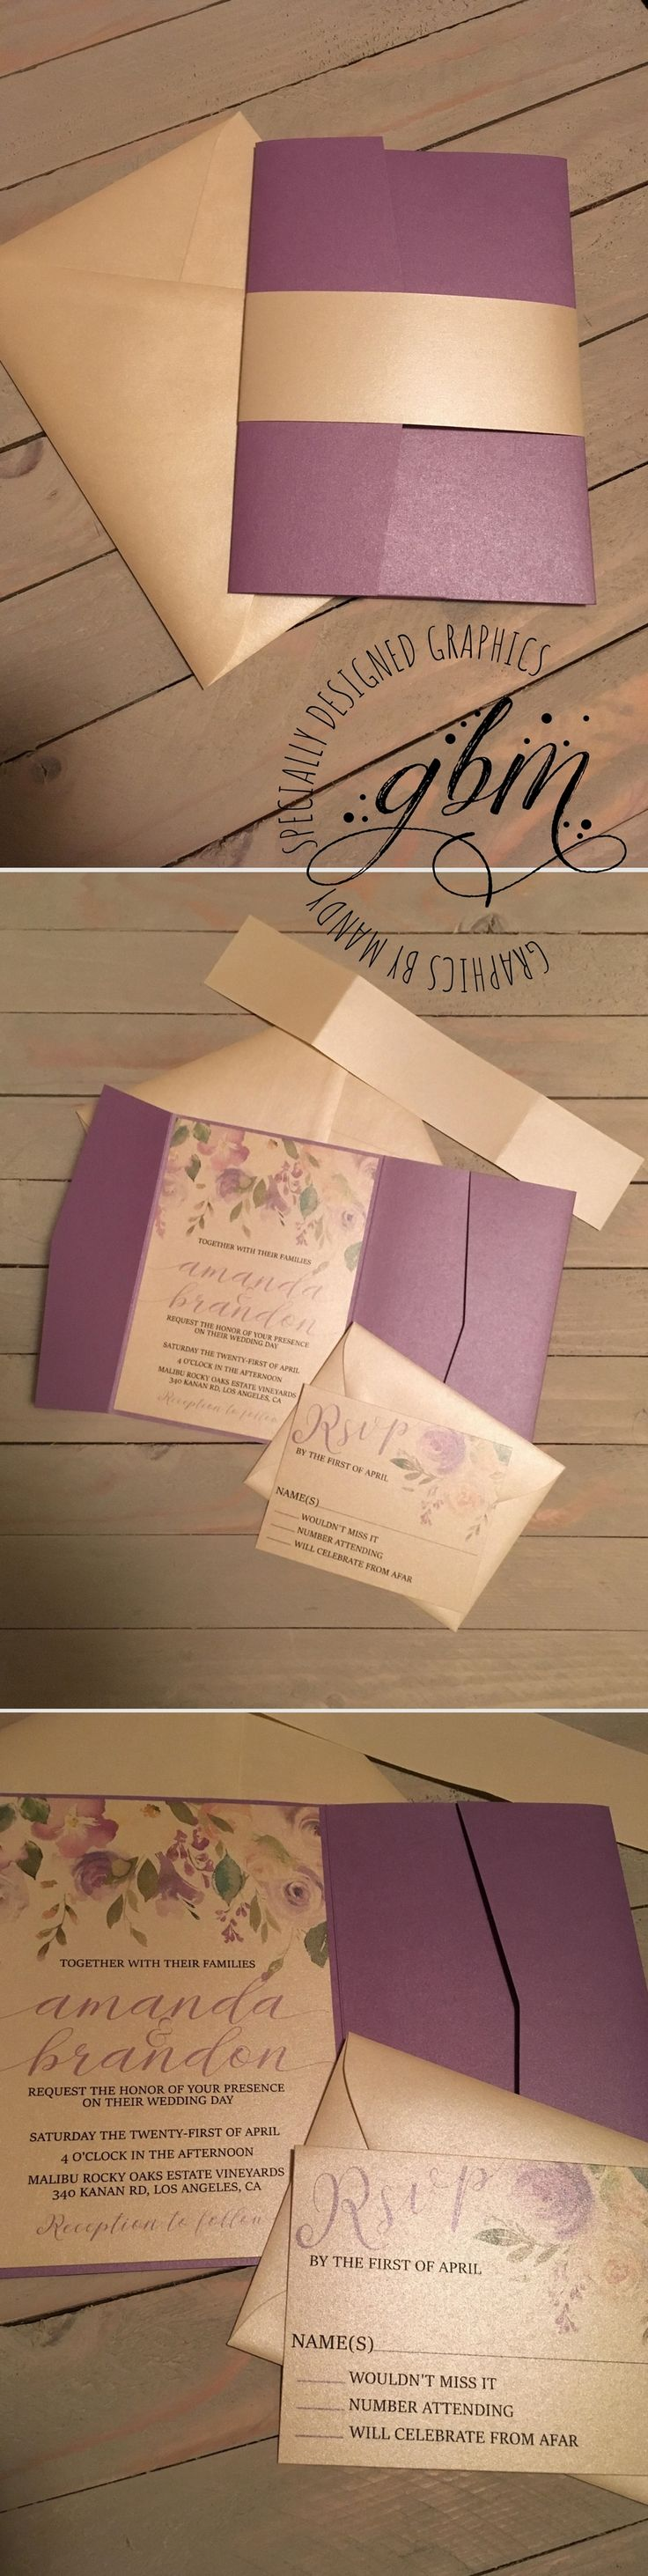 in wedding invitations is the man s name first%0A   Champagne Pop   This beautiful fully metallic wedding set is exactly what  you u    ve been looking for  Shimmery champagne with a pop of lavender